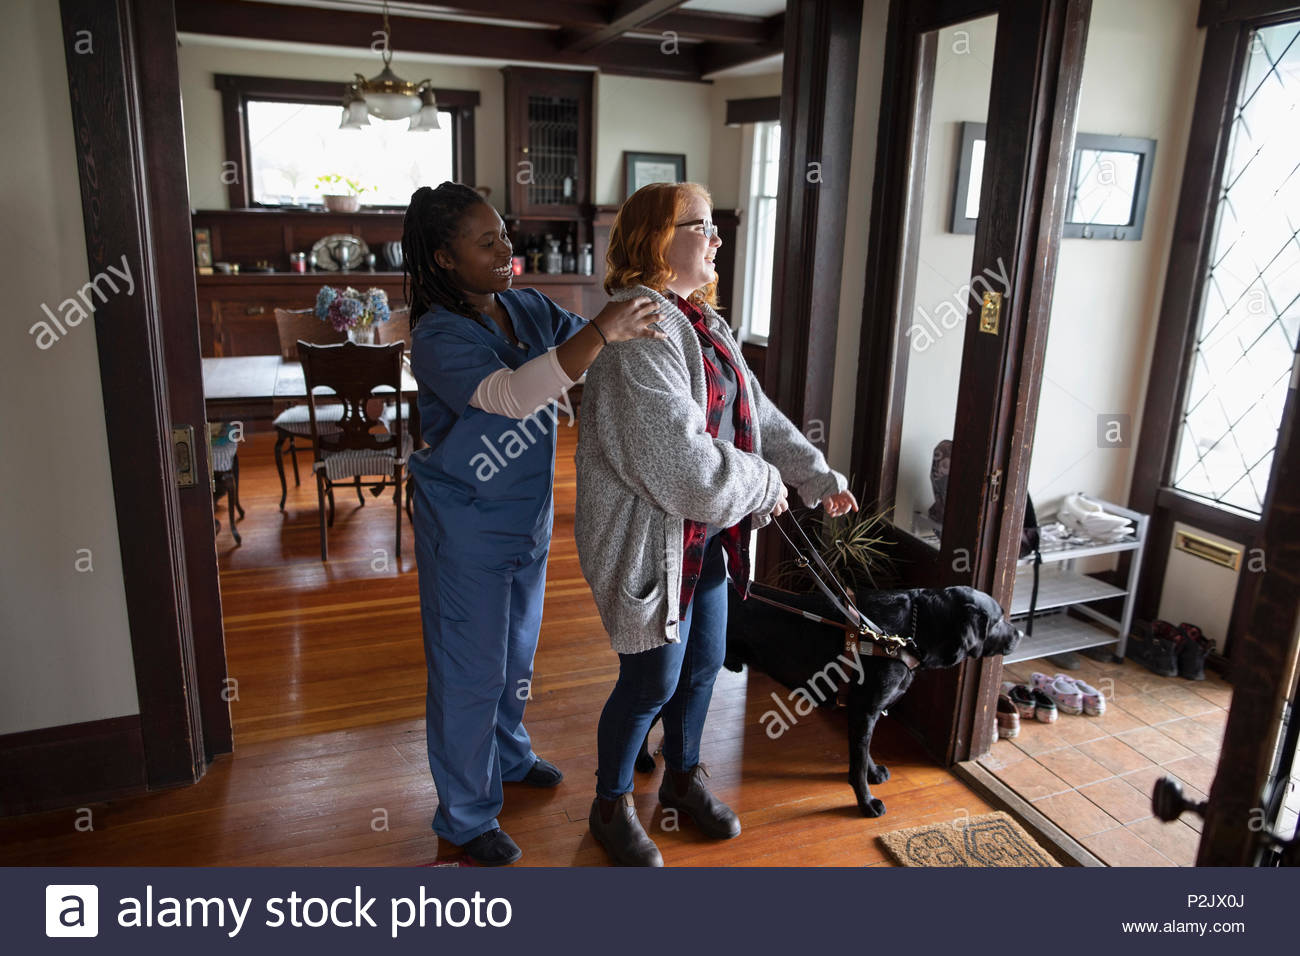 Home caregiver preparing visually impaired woman and seeing eye dog for walk - Stock Image